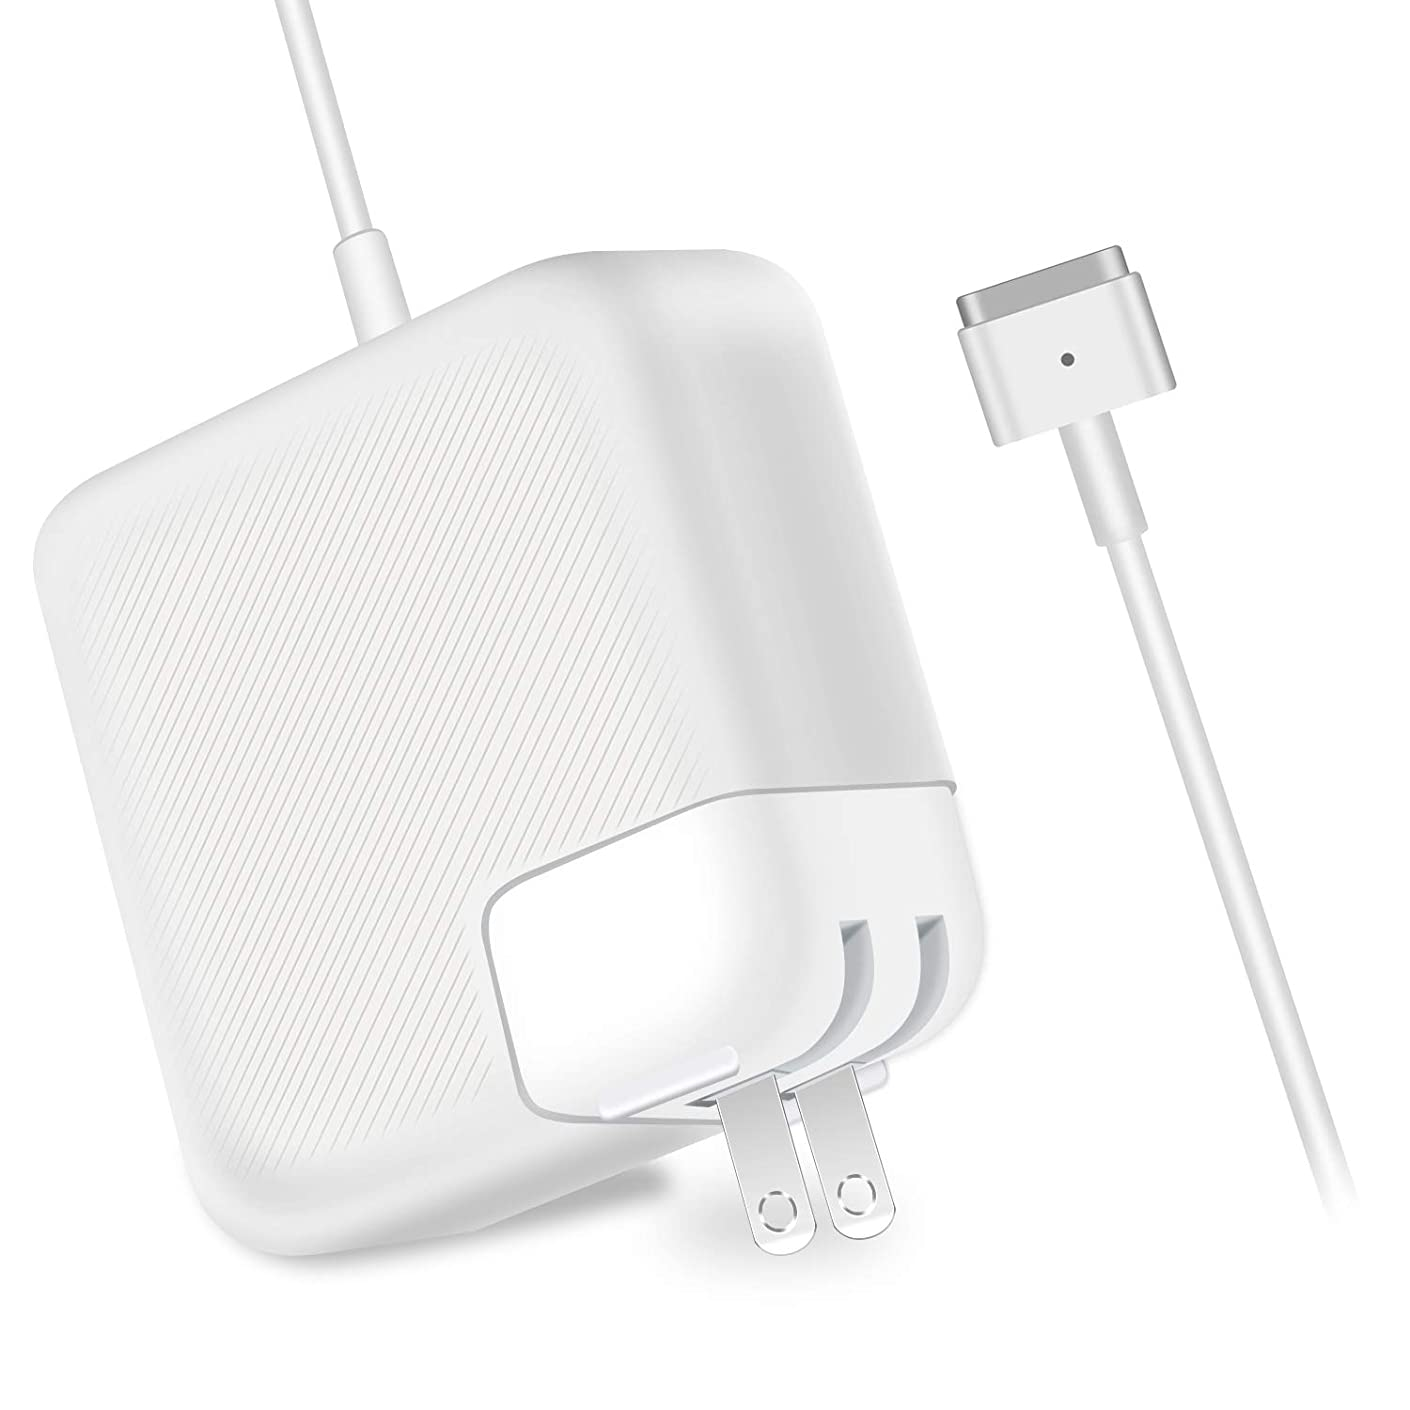 Mac Book Pro Charger, AC 60w Magsafe 2 T-Tip Power Adapter Charger Replacement for MacBook Pro MacBook Pro 13-inch (After Late 2012)